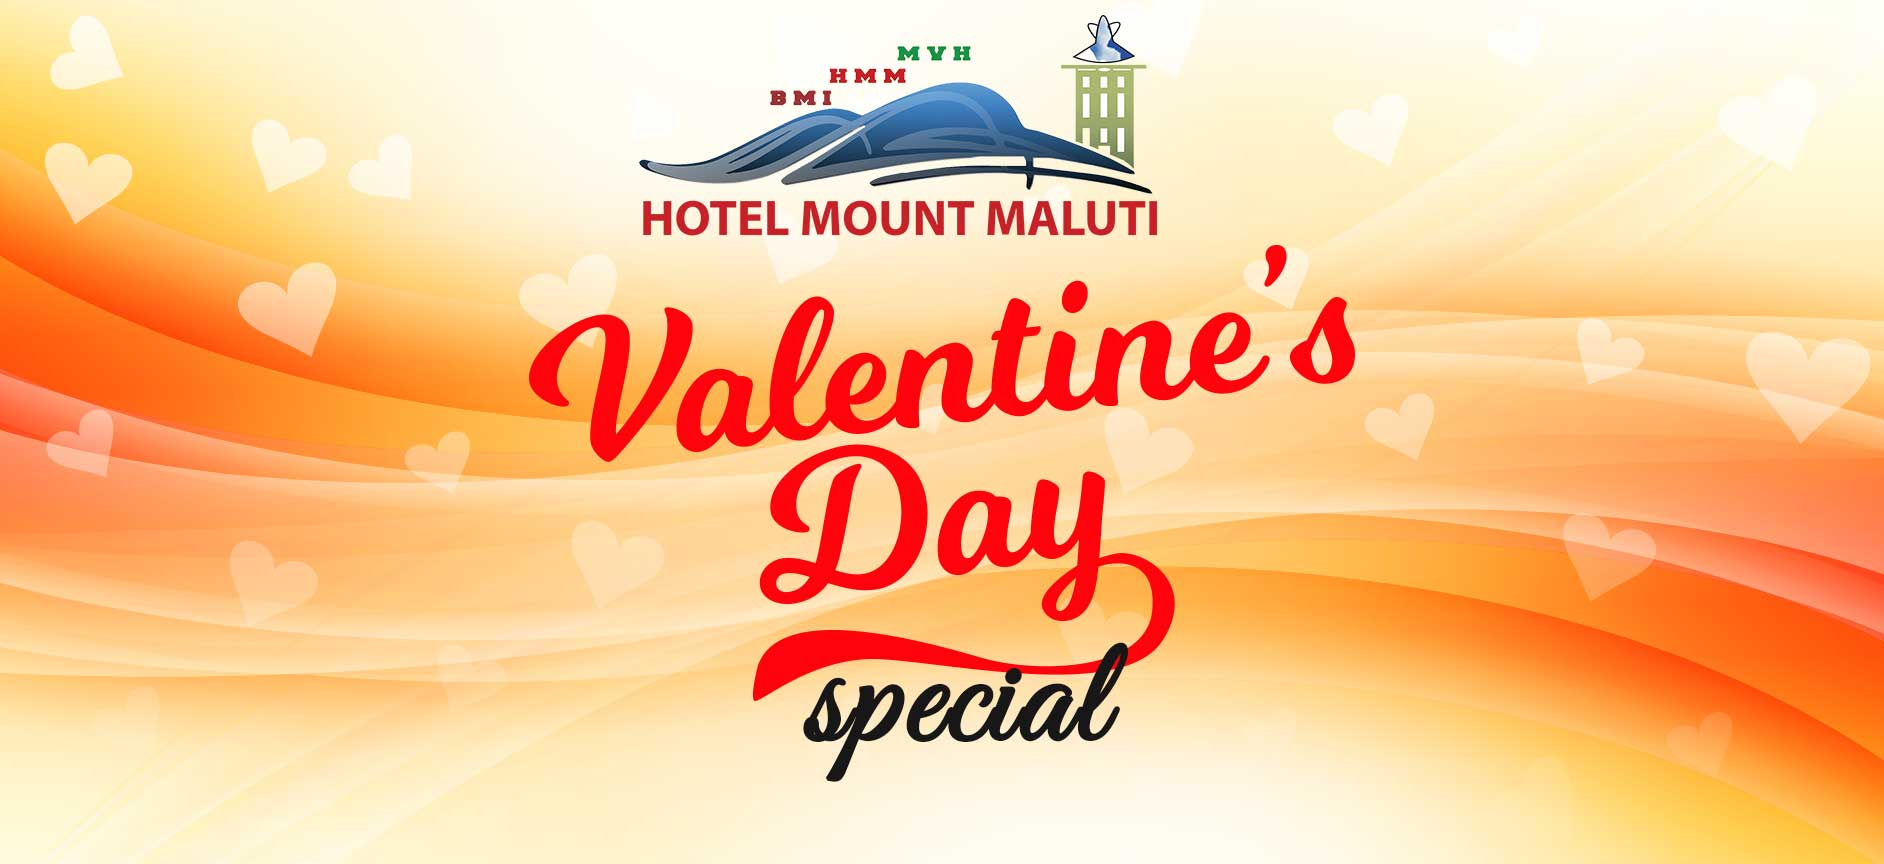 Valentine's Dinner Special at Hotel Mount Maluti – Lesotho